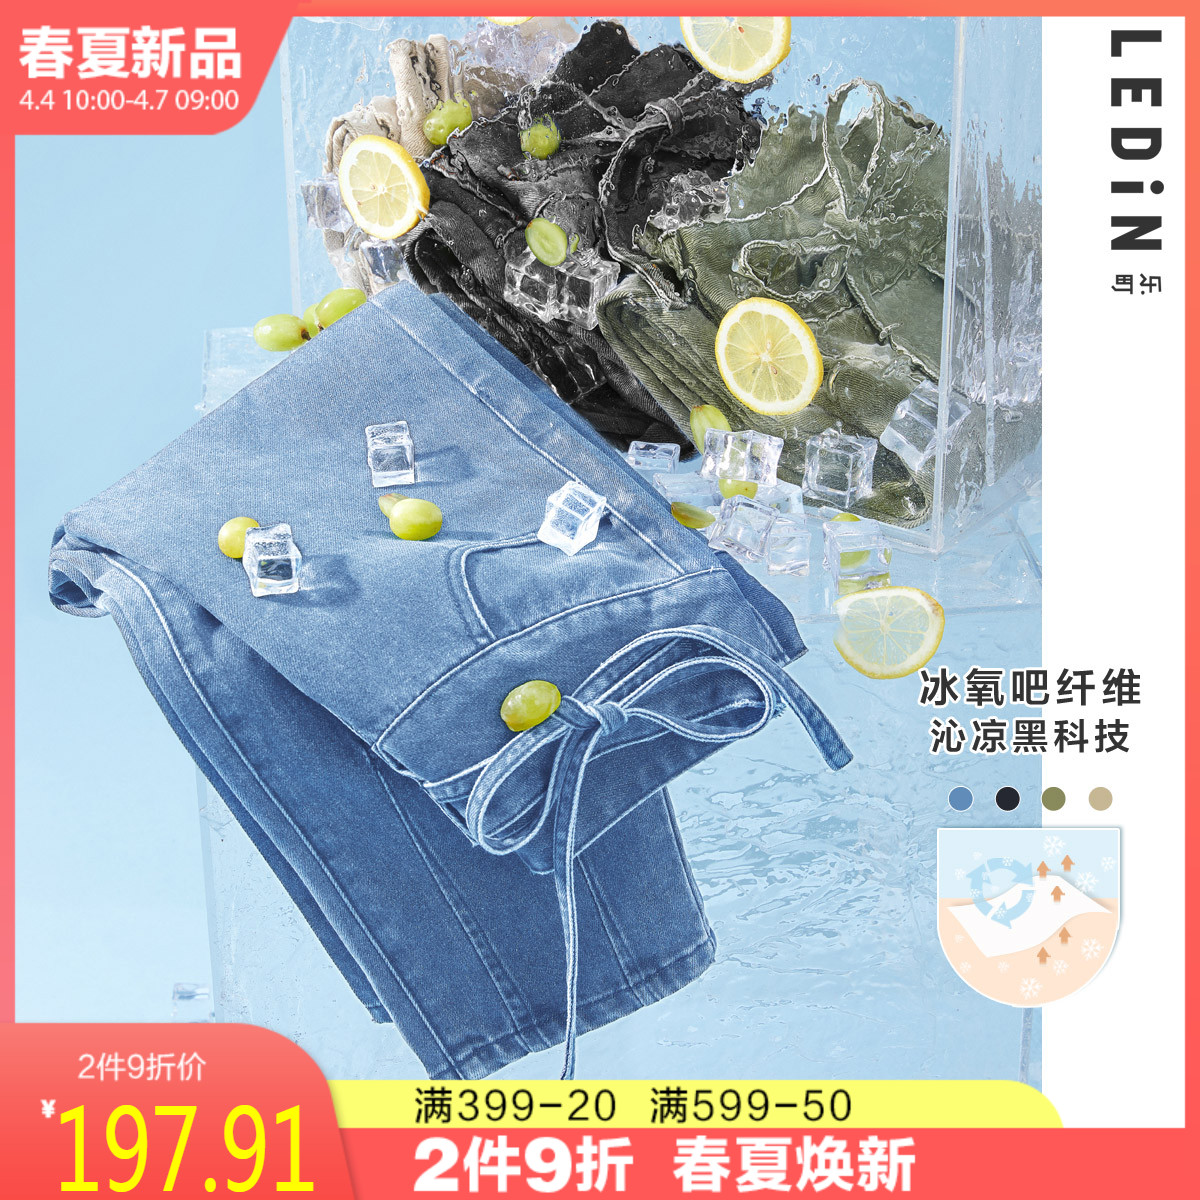 New Le Ting tie jeans spring 2020 new ice oxygen bar cool relaxed dad pants radish pants